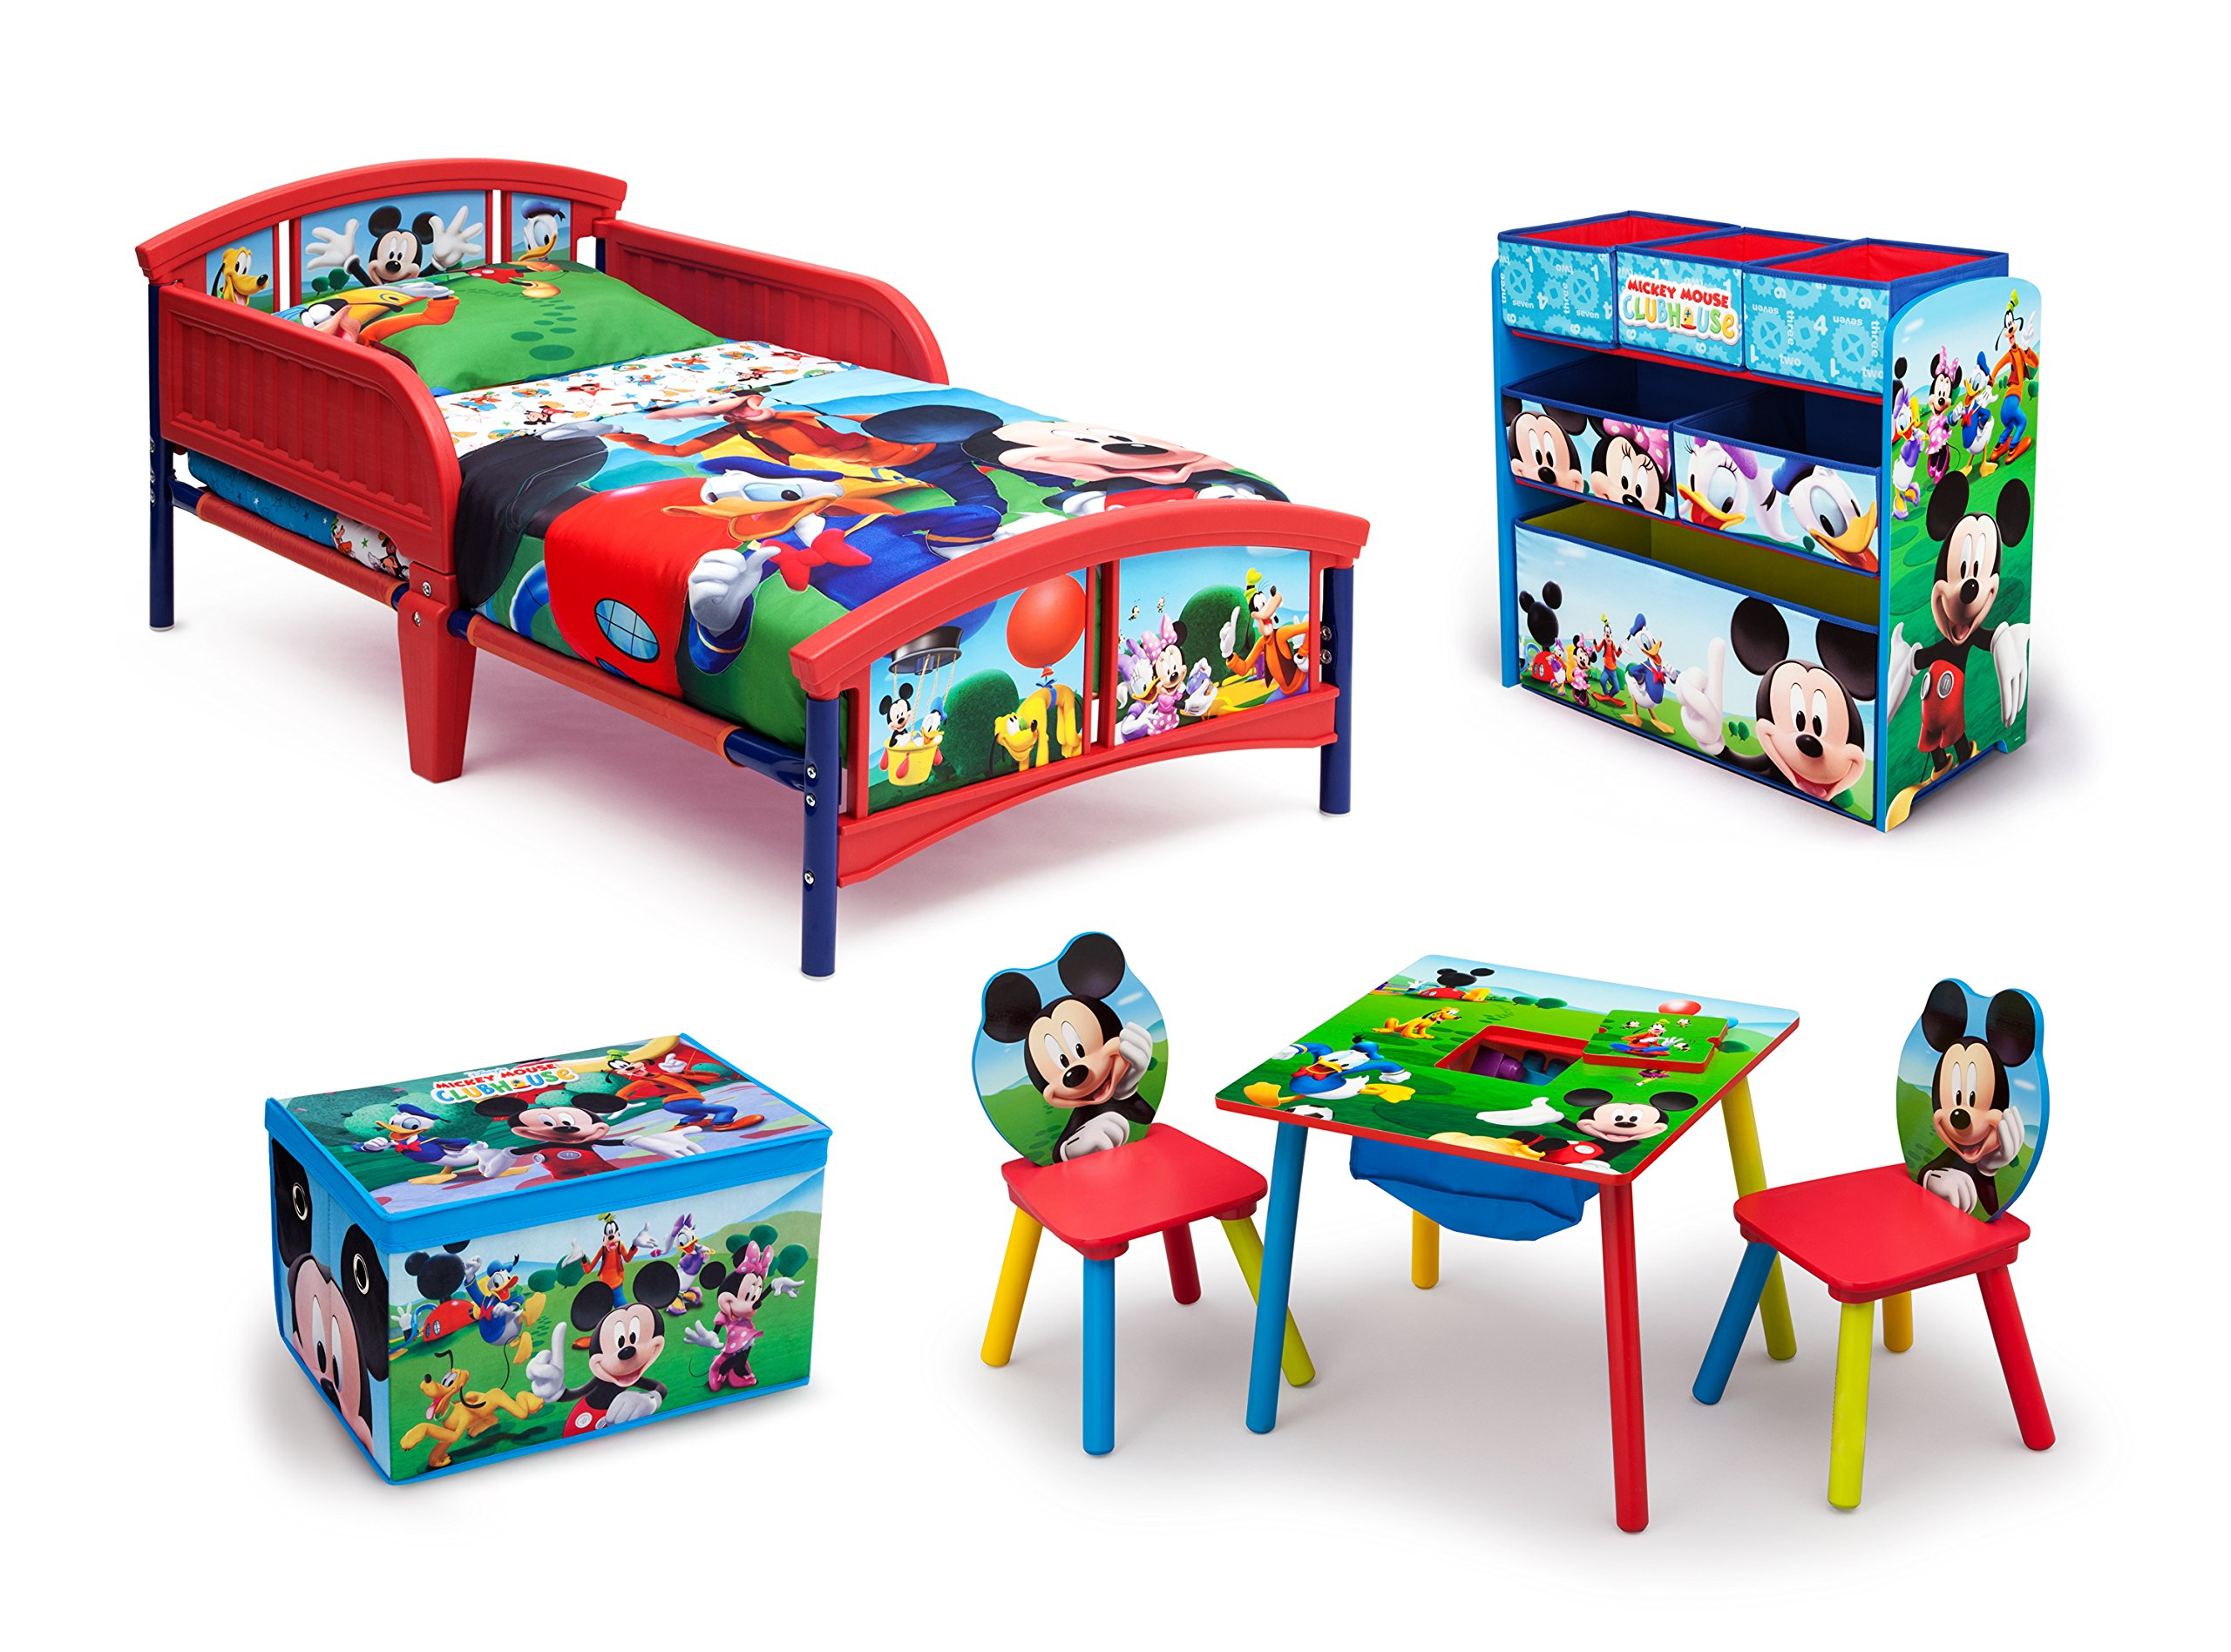 Disney Mickey Mouse Room-in-a-Box (Toddler Bed, Table & Chairs, Multi-Bin Toy Organizer, Fabric Toy Box)